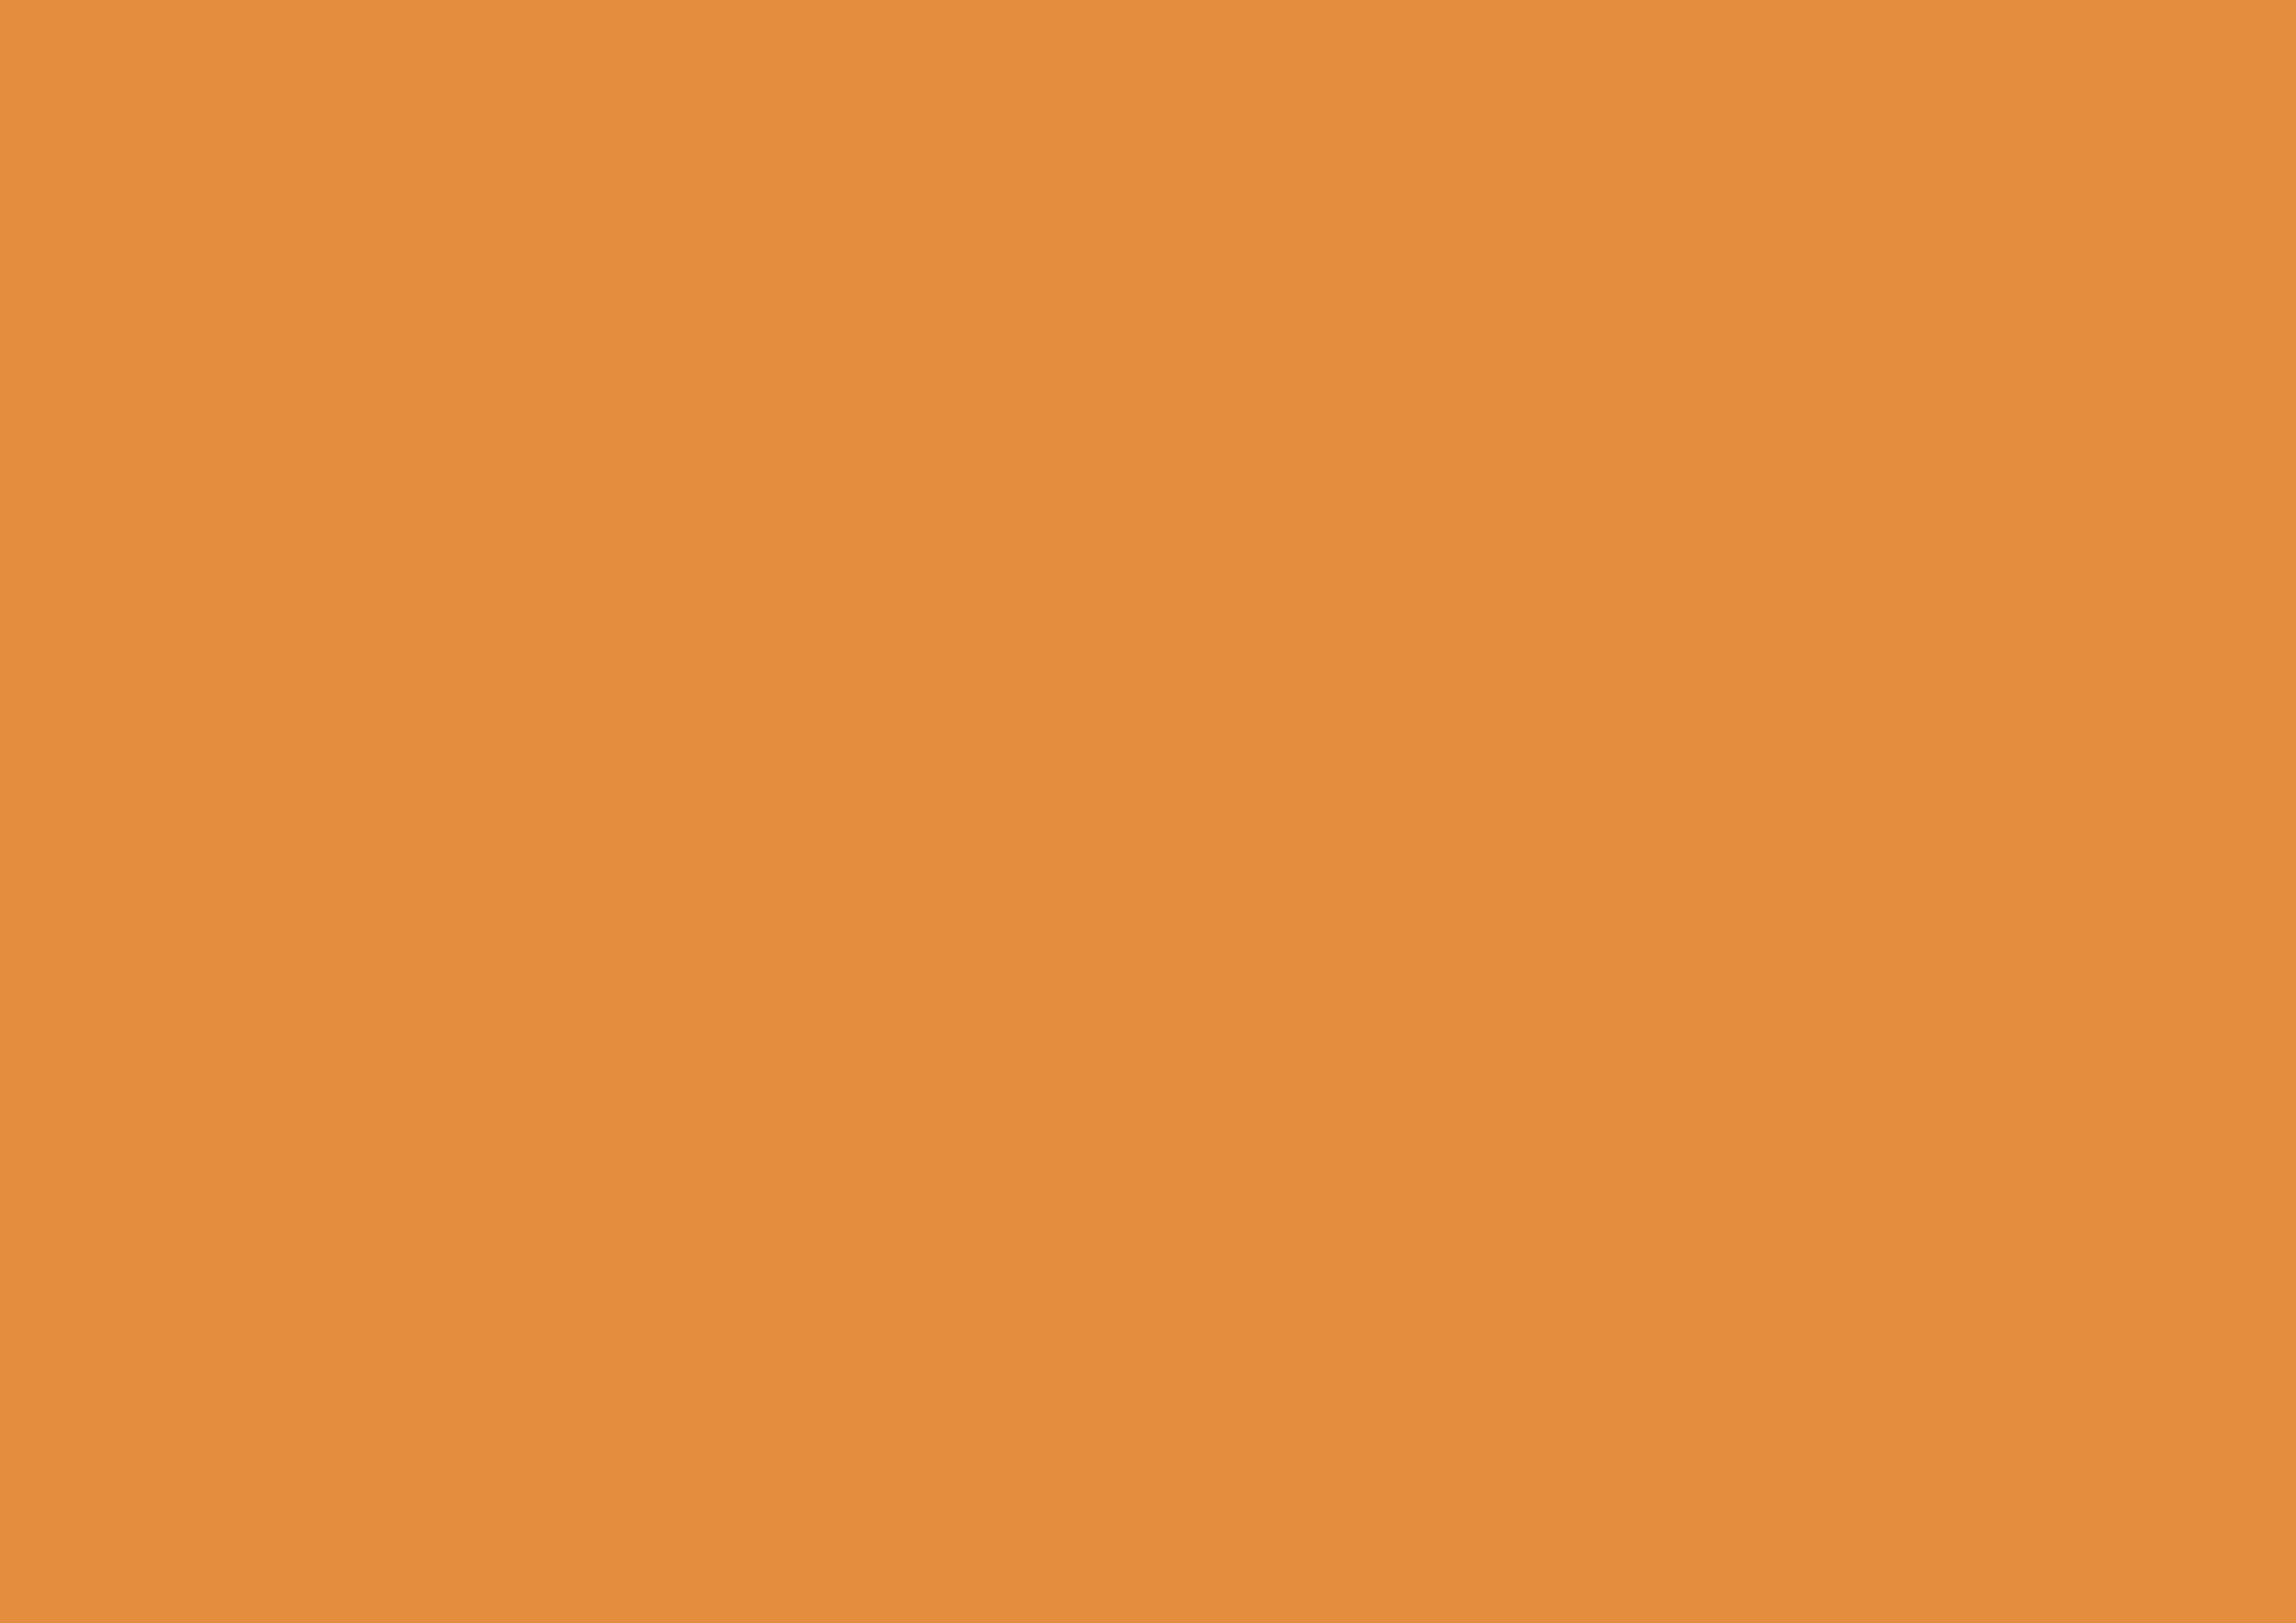 3508x2480 Tigers Eye Solid Color Background